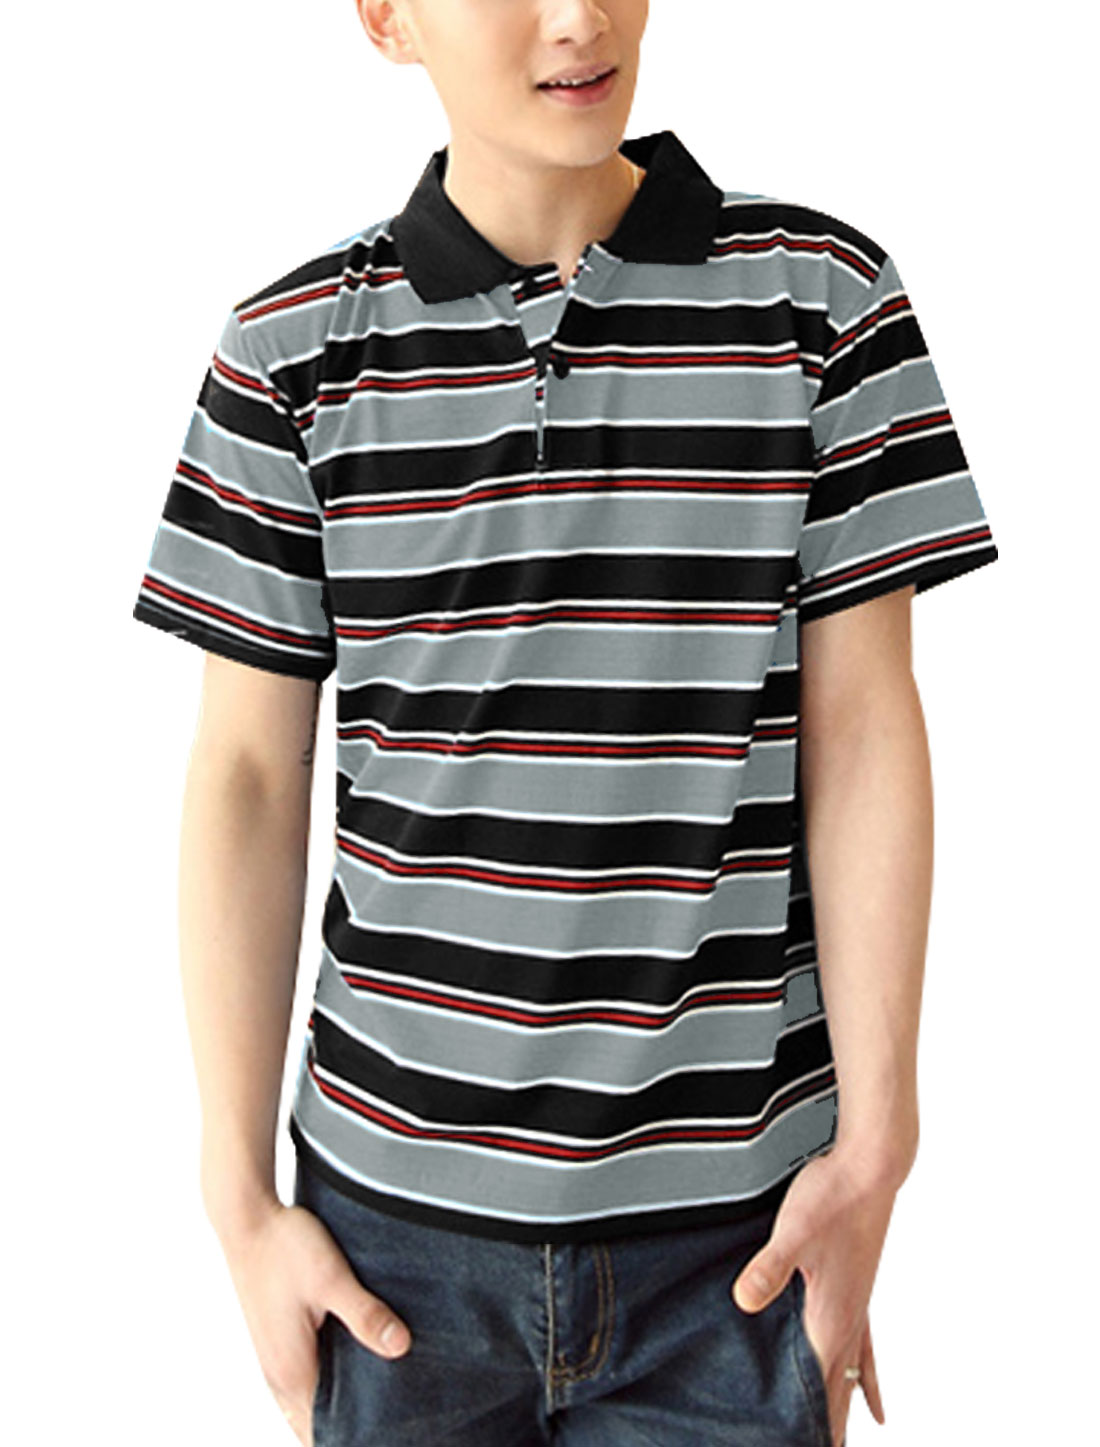 Men Stripes Pattern Two Buttons Closure Slim Fit Polo Shirt Black Light Gray M